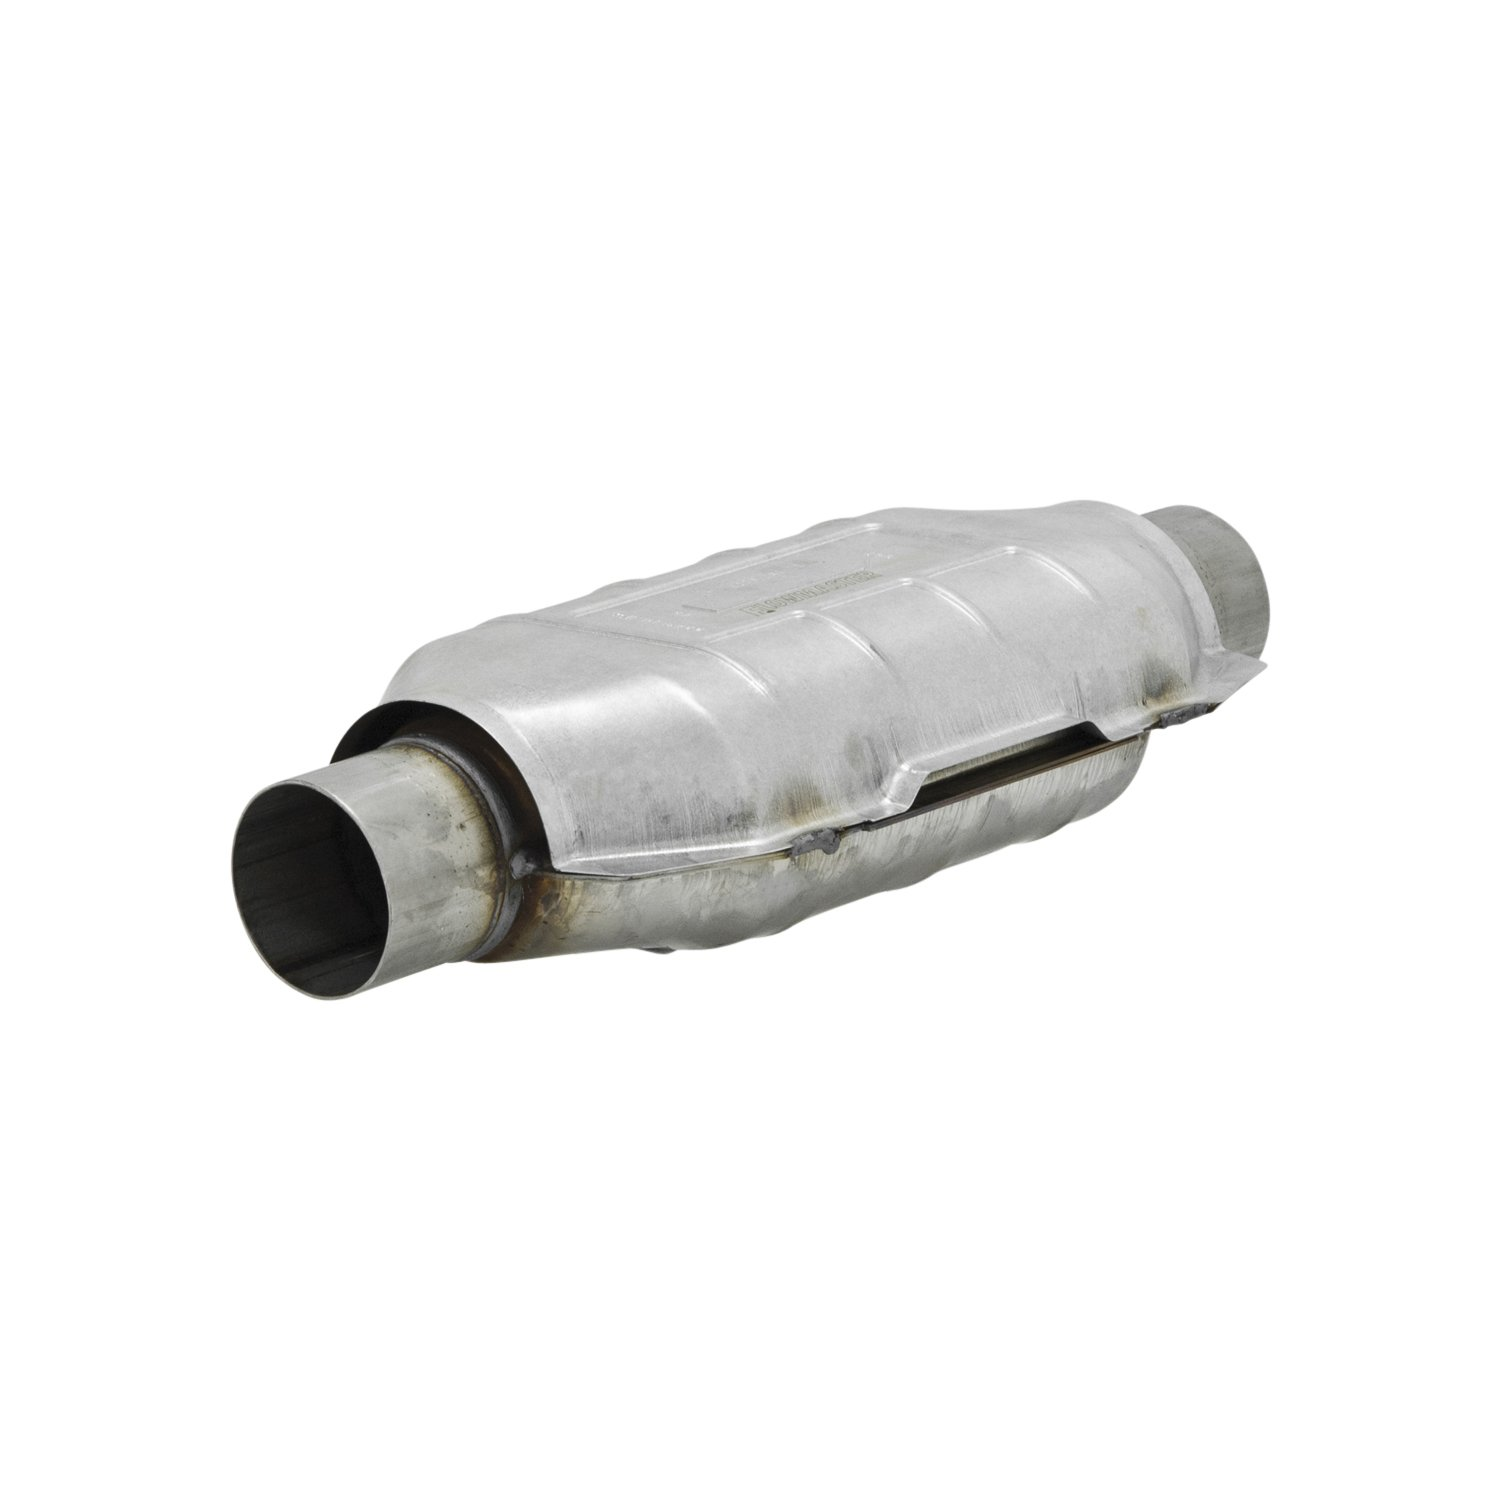 Flowmaster 2900230 290 Series 3'' Inlet/Outlet Oval Universal Catalytic Converter